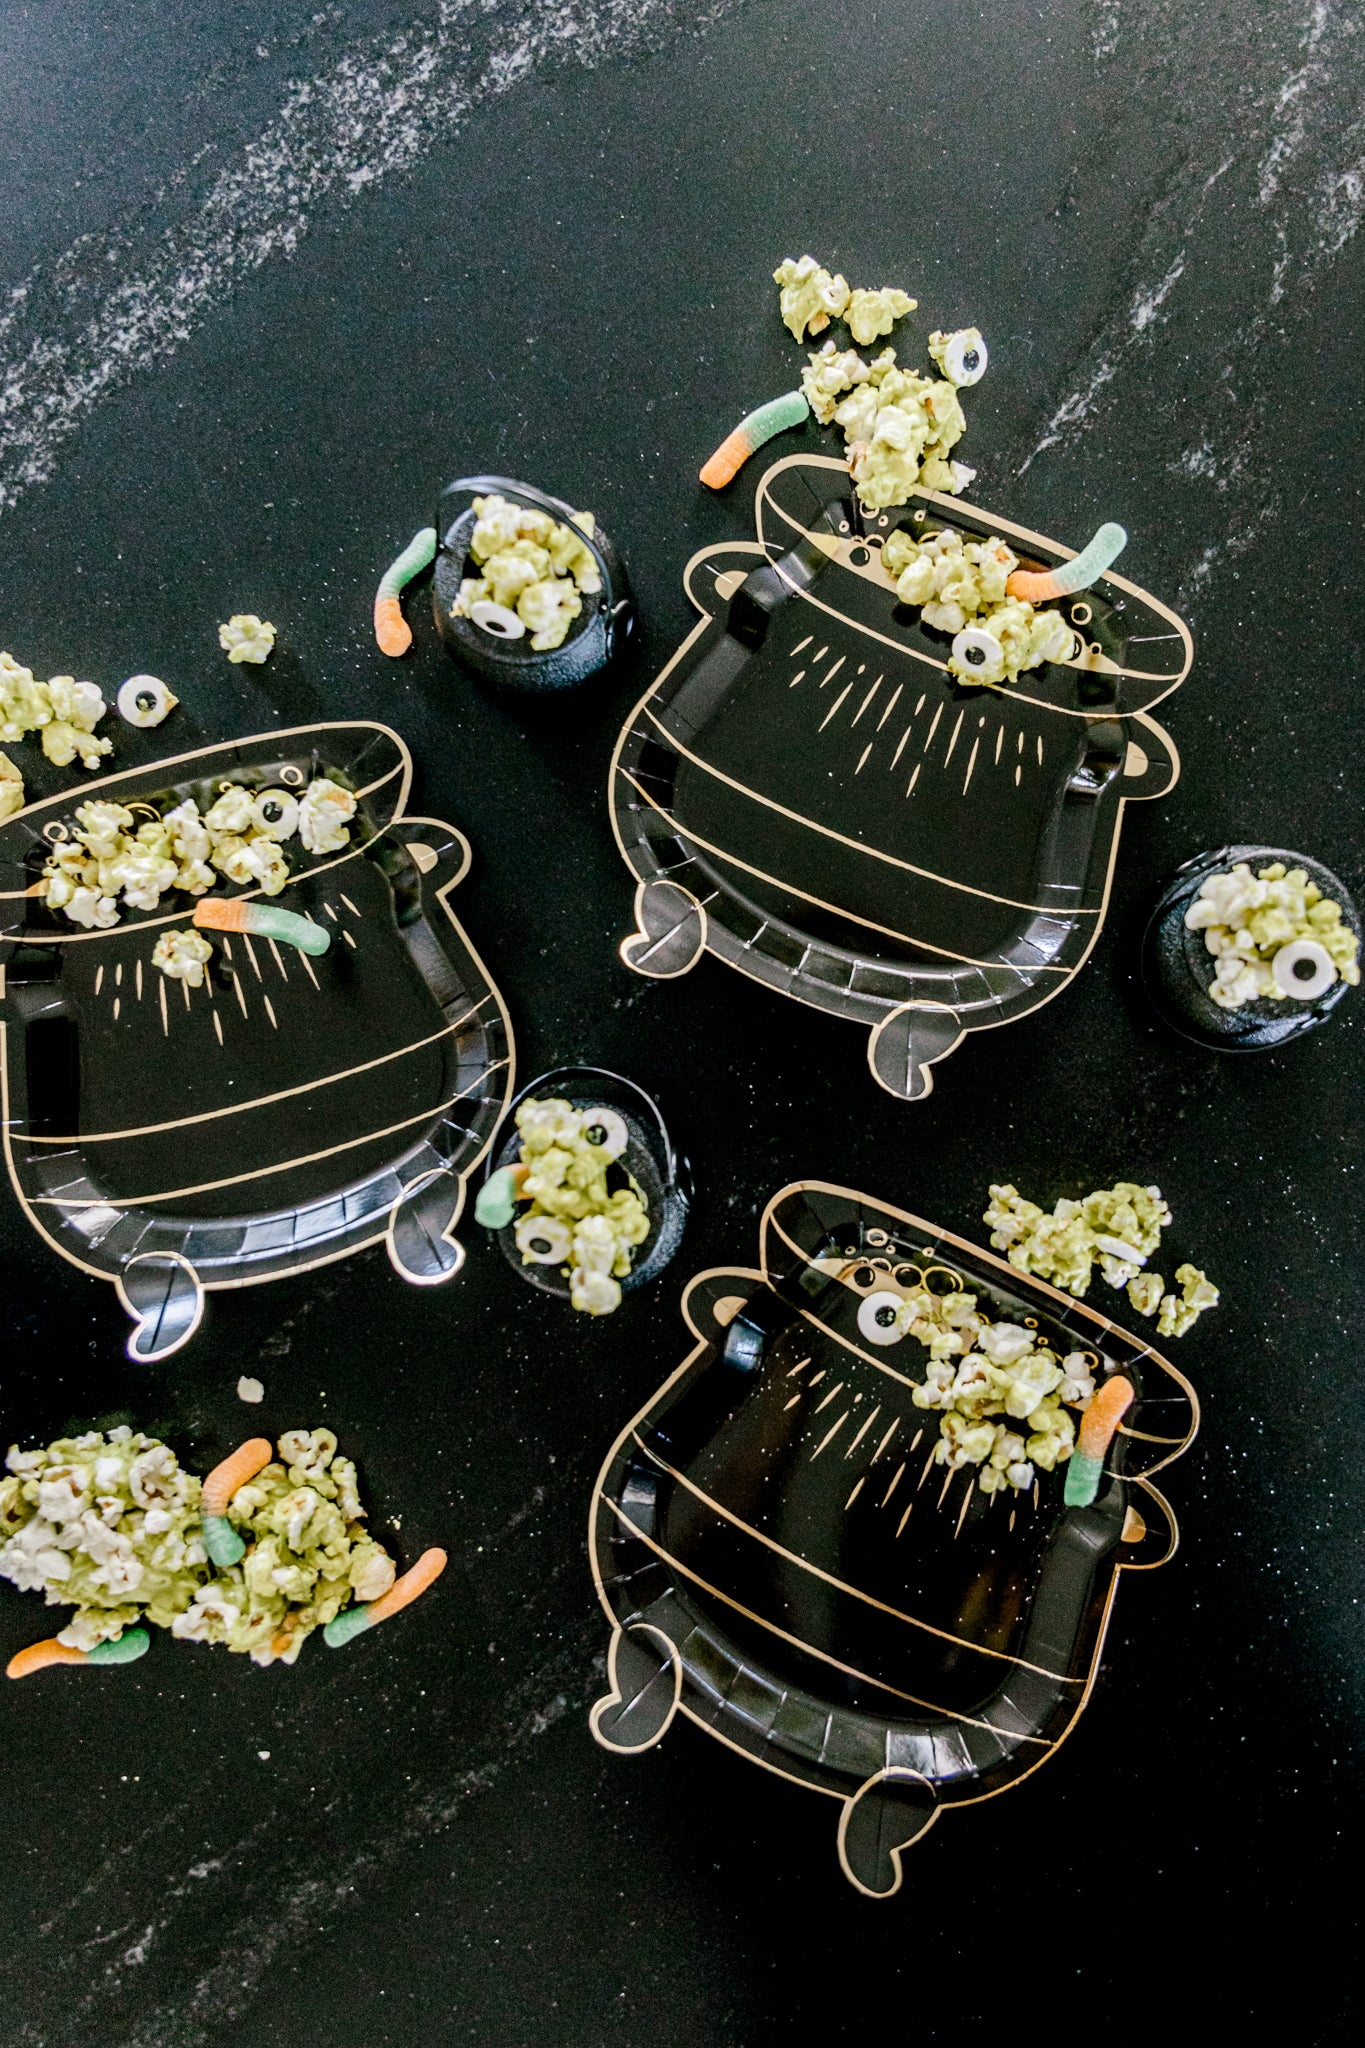 Cauldron plates with candy and popcorn